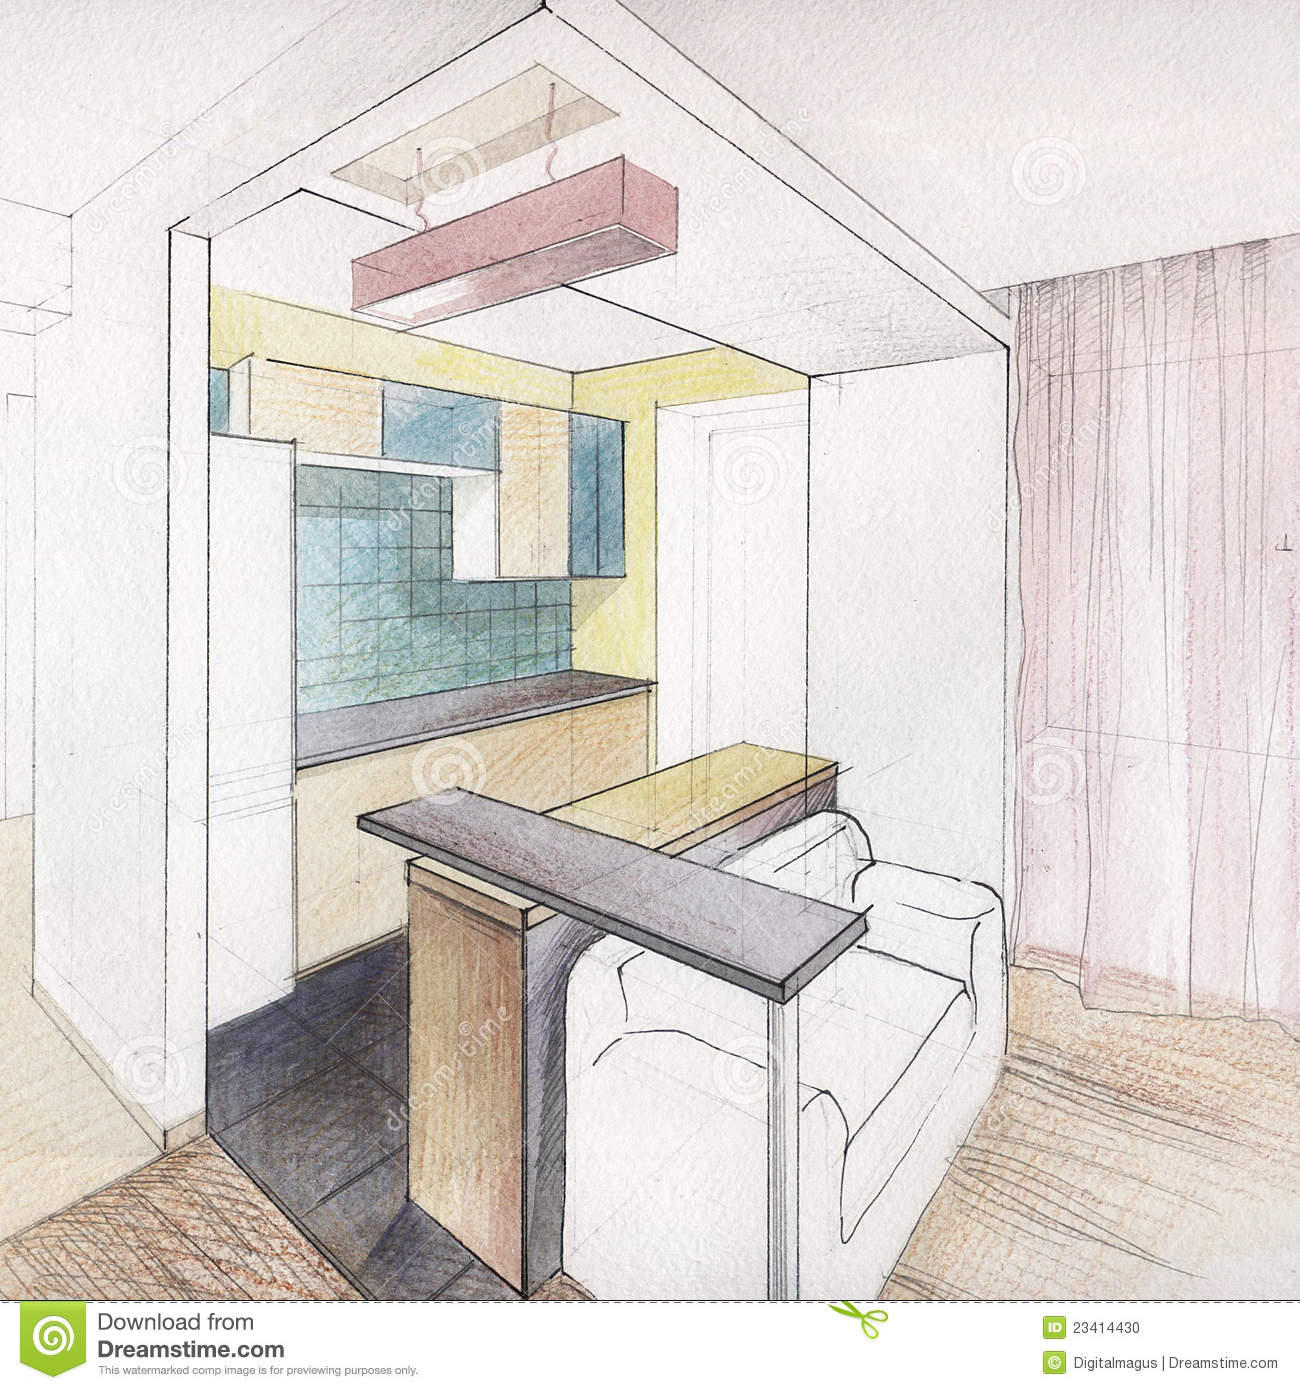 Kitchen Interior Drawing Stock Illustration Image Of Minimalism 23414430